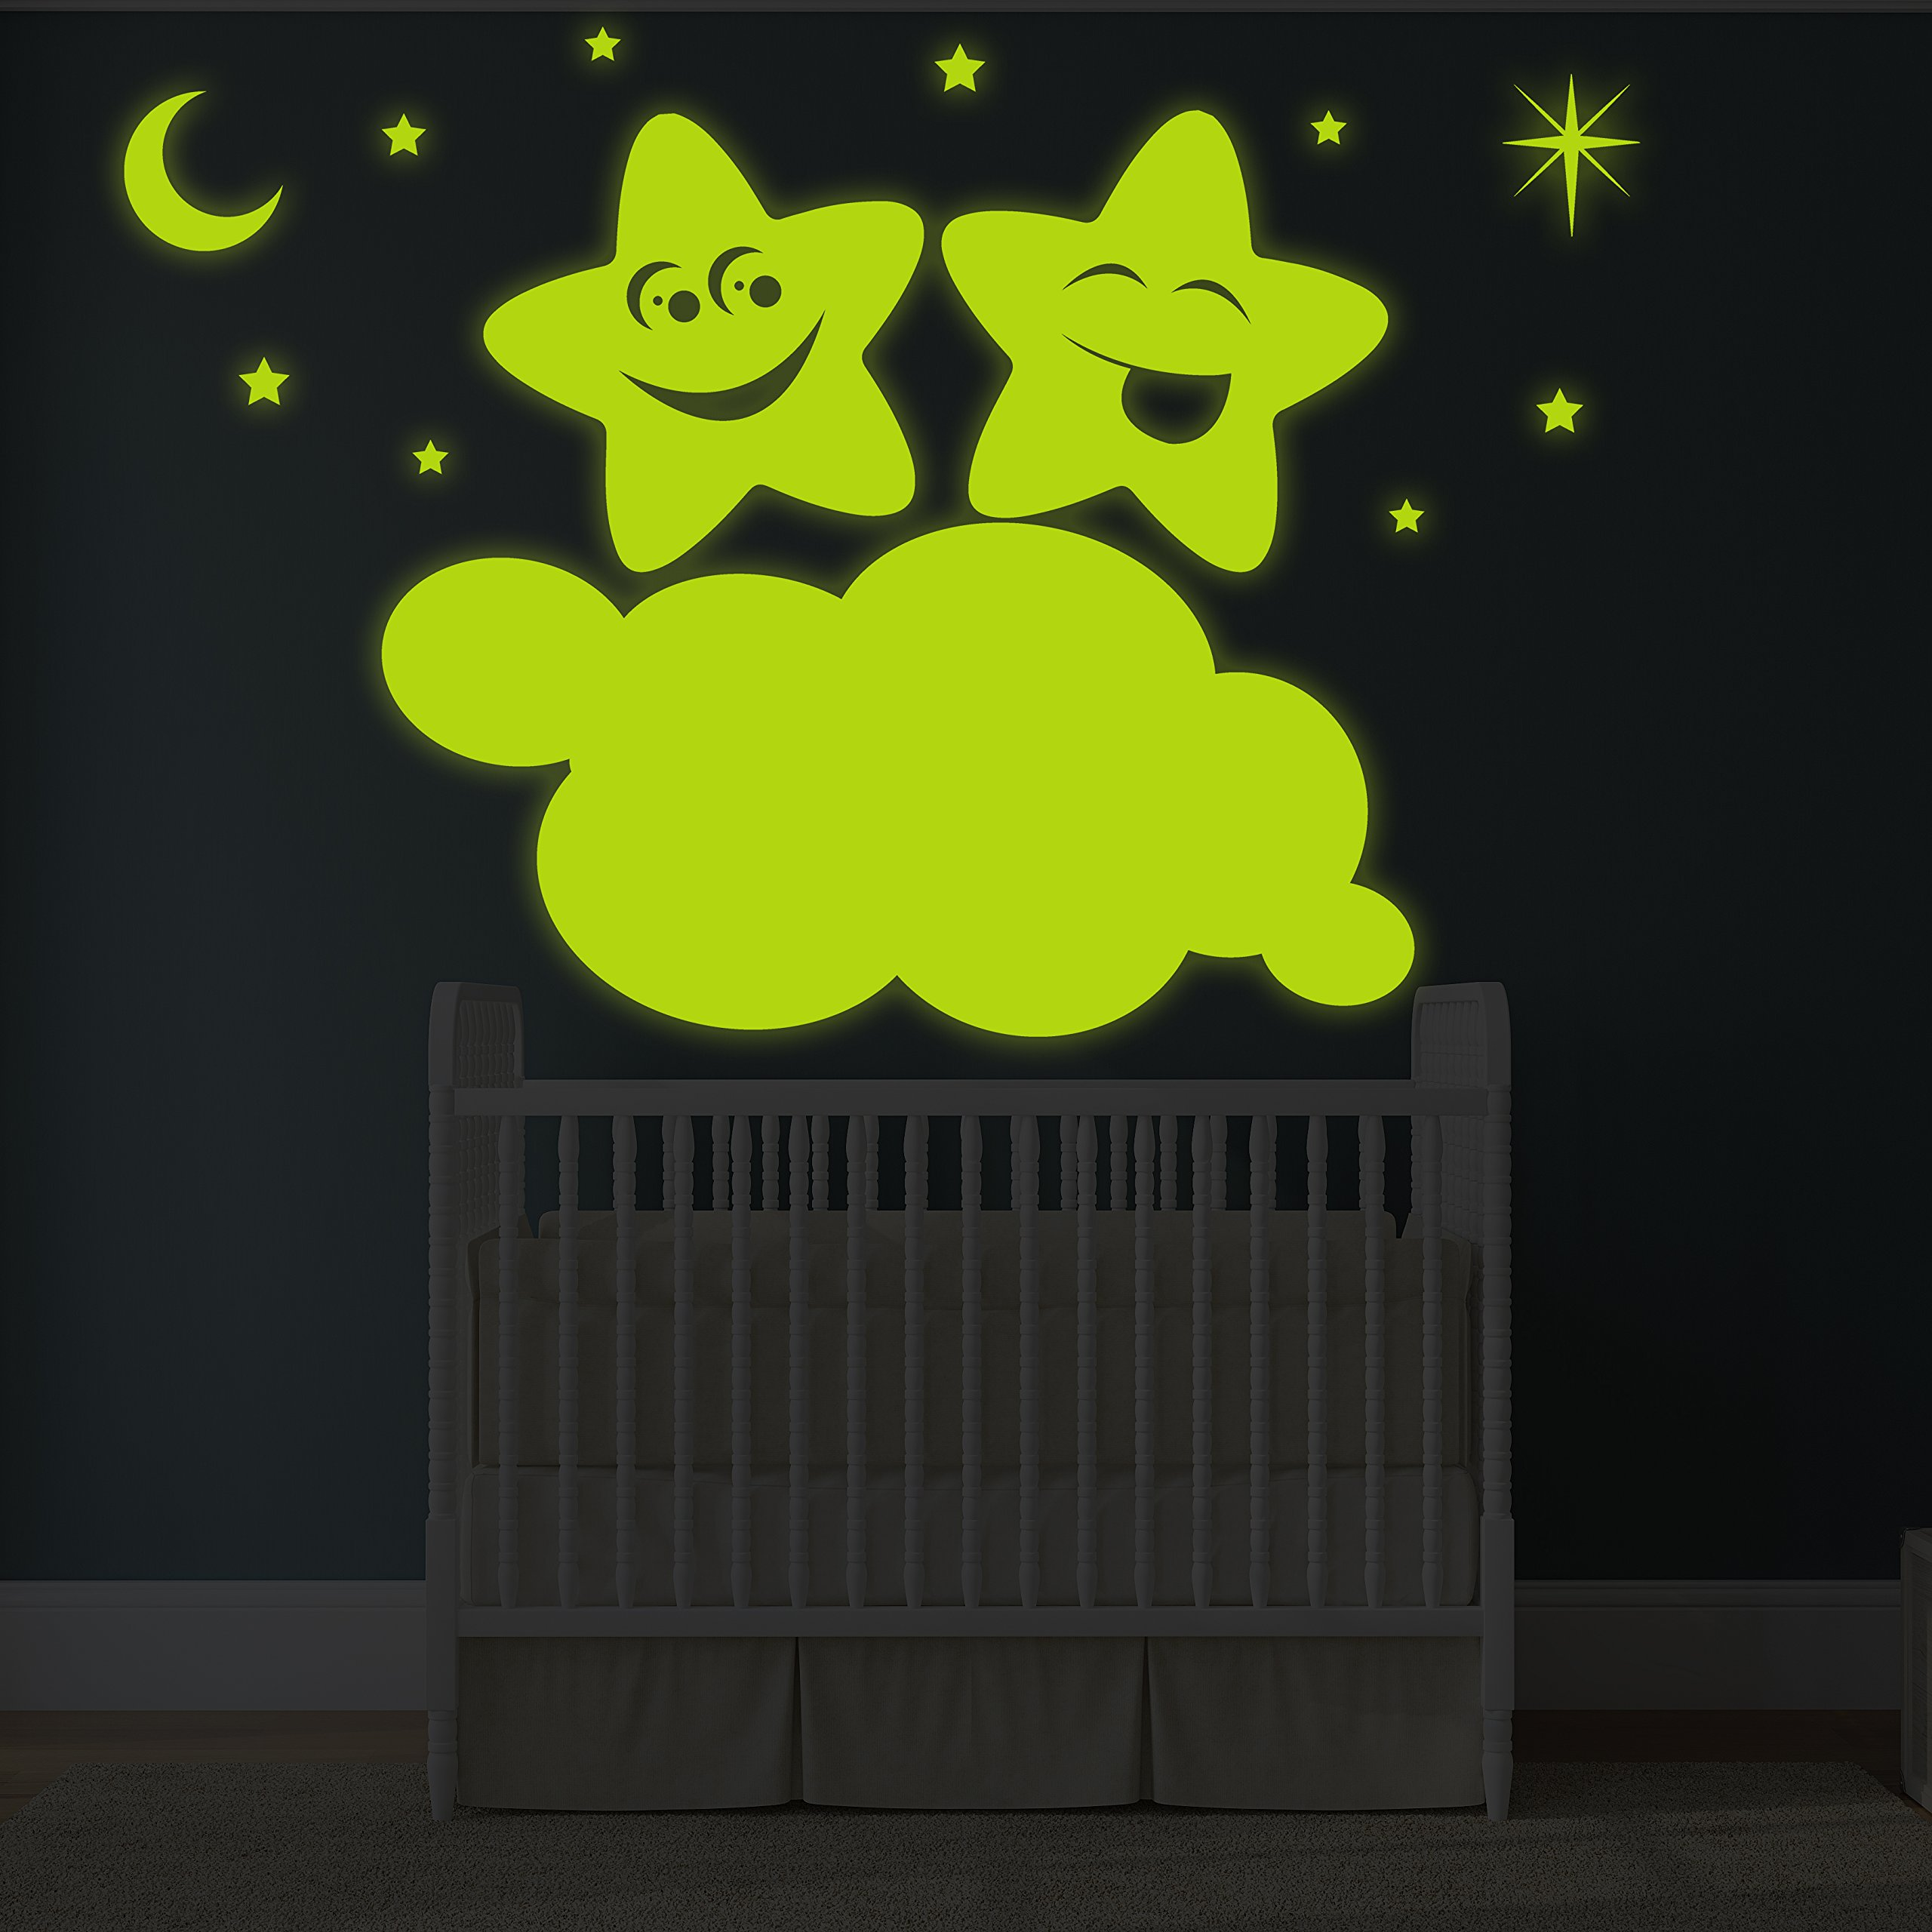 ( 71'' x 47'' ) Glowing Vinyl Wall Decal Twin Stars on Cloud / Glow in the Dark Sticker / Happy Star Luminescent Mural Kids, Baby Room + Free Decal Gift!